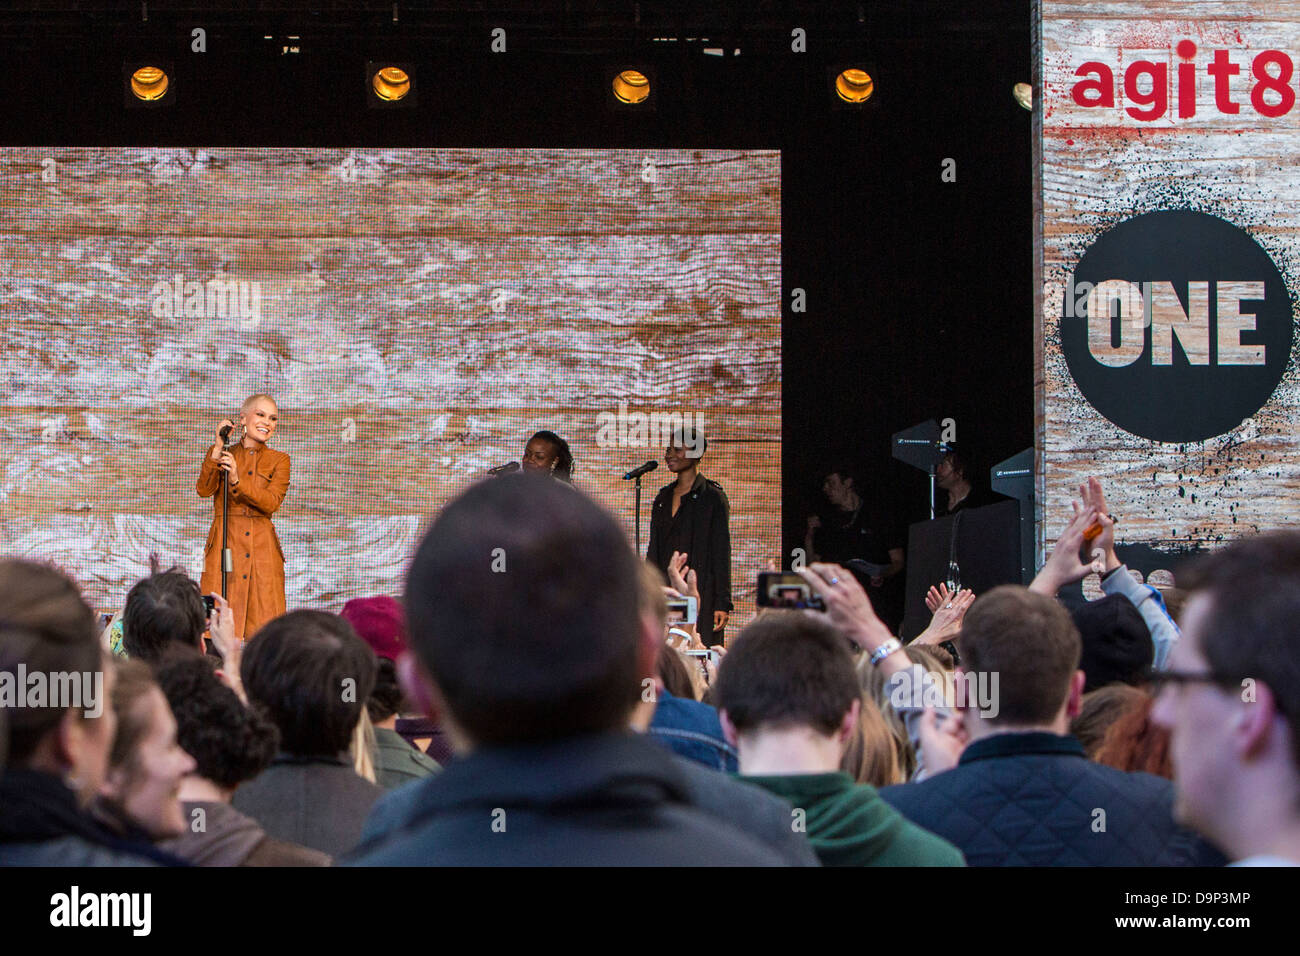 Jessie J performs at the ONE Agit8 campaign, outside Tate Modern, London. - Stock Image